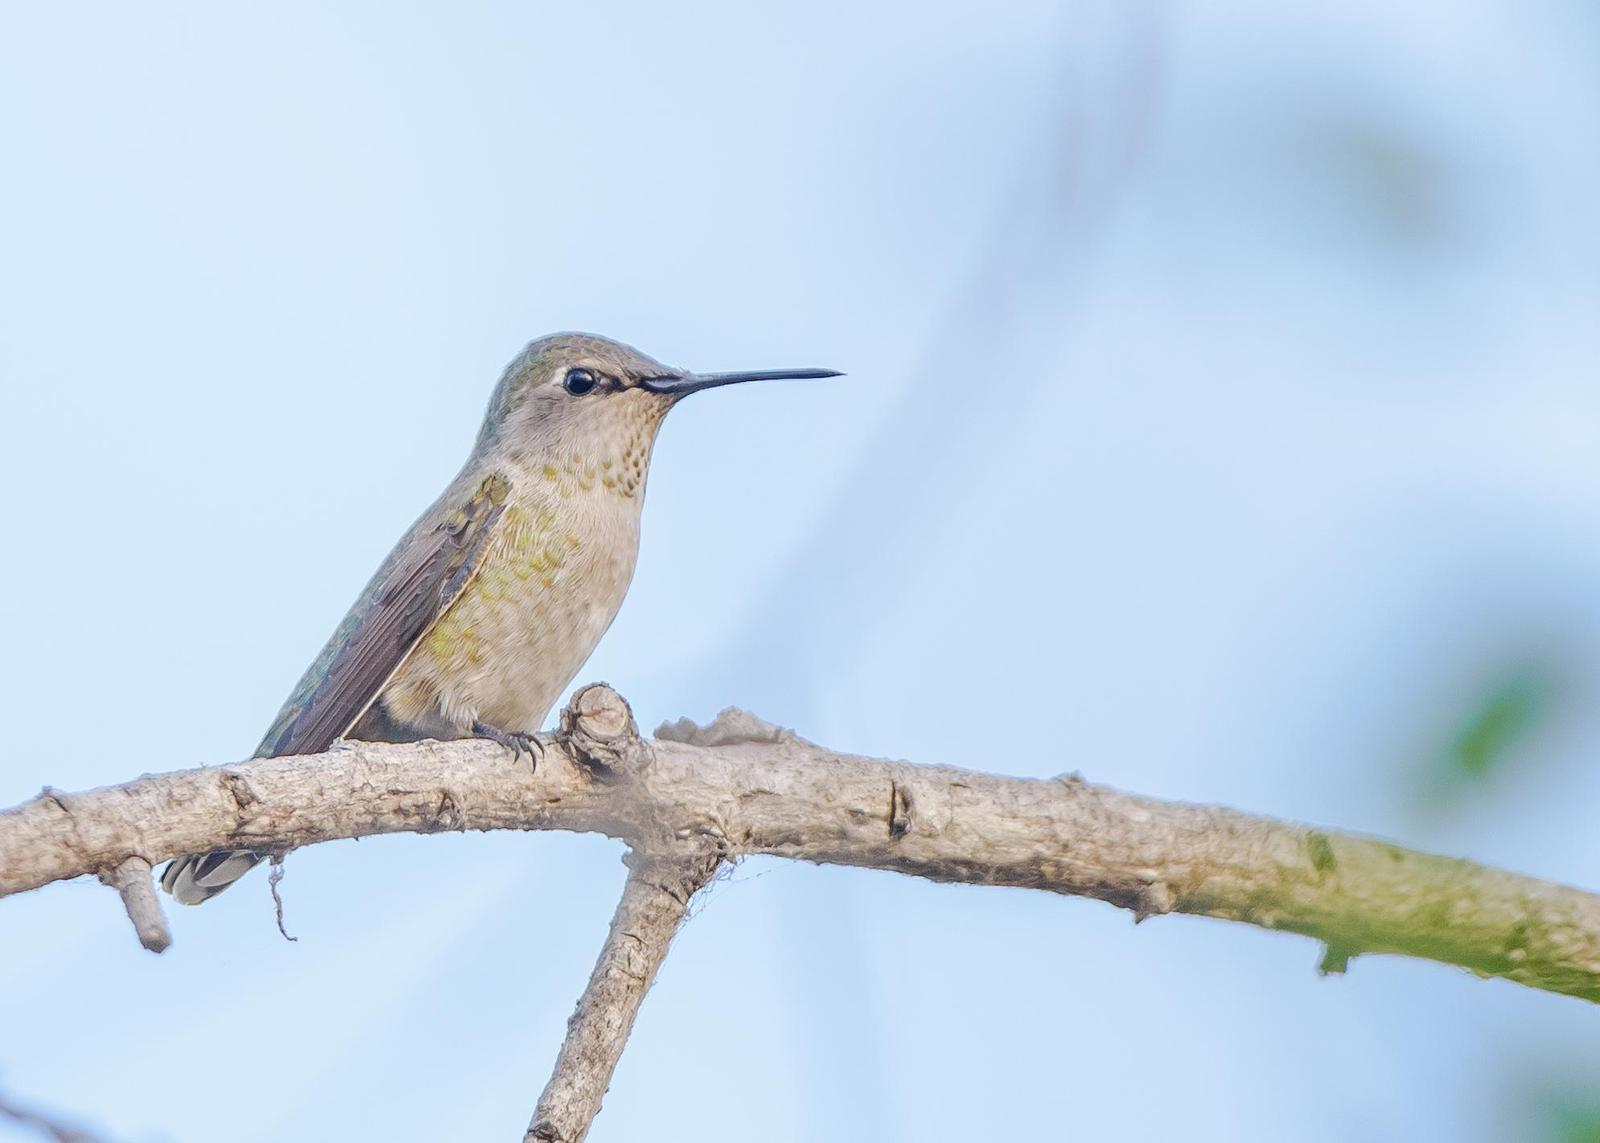 Anna's Hummingbird Photo by Keshava Mysore